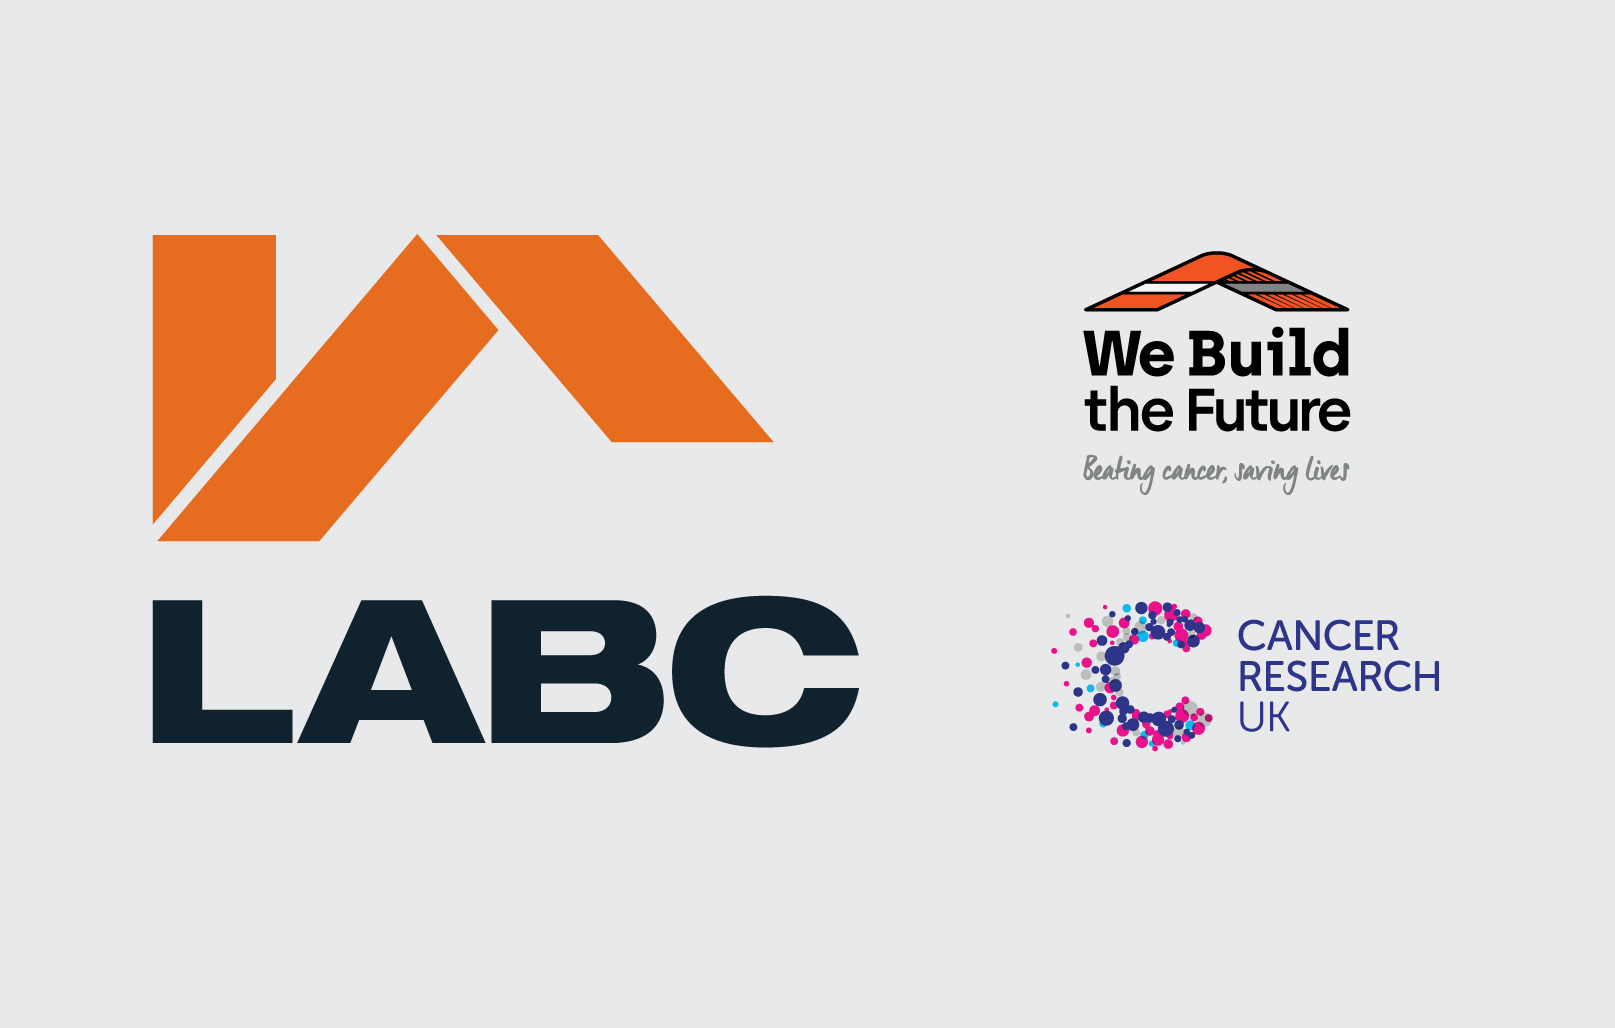 LABC Charity Of The Year